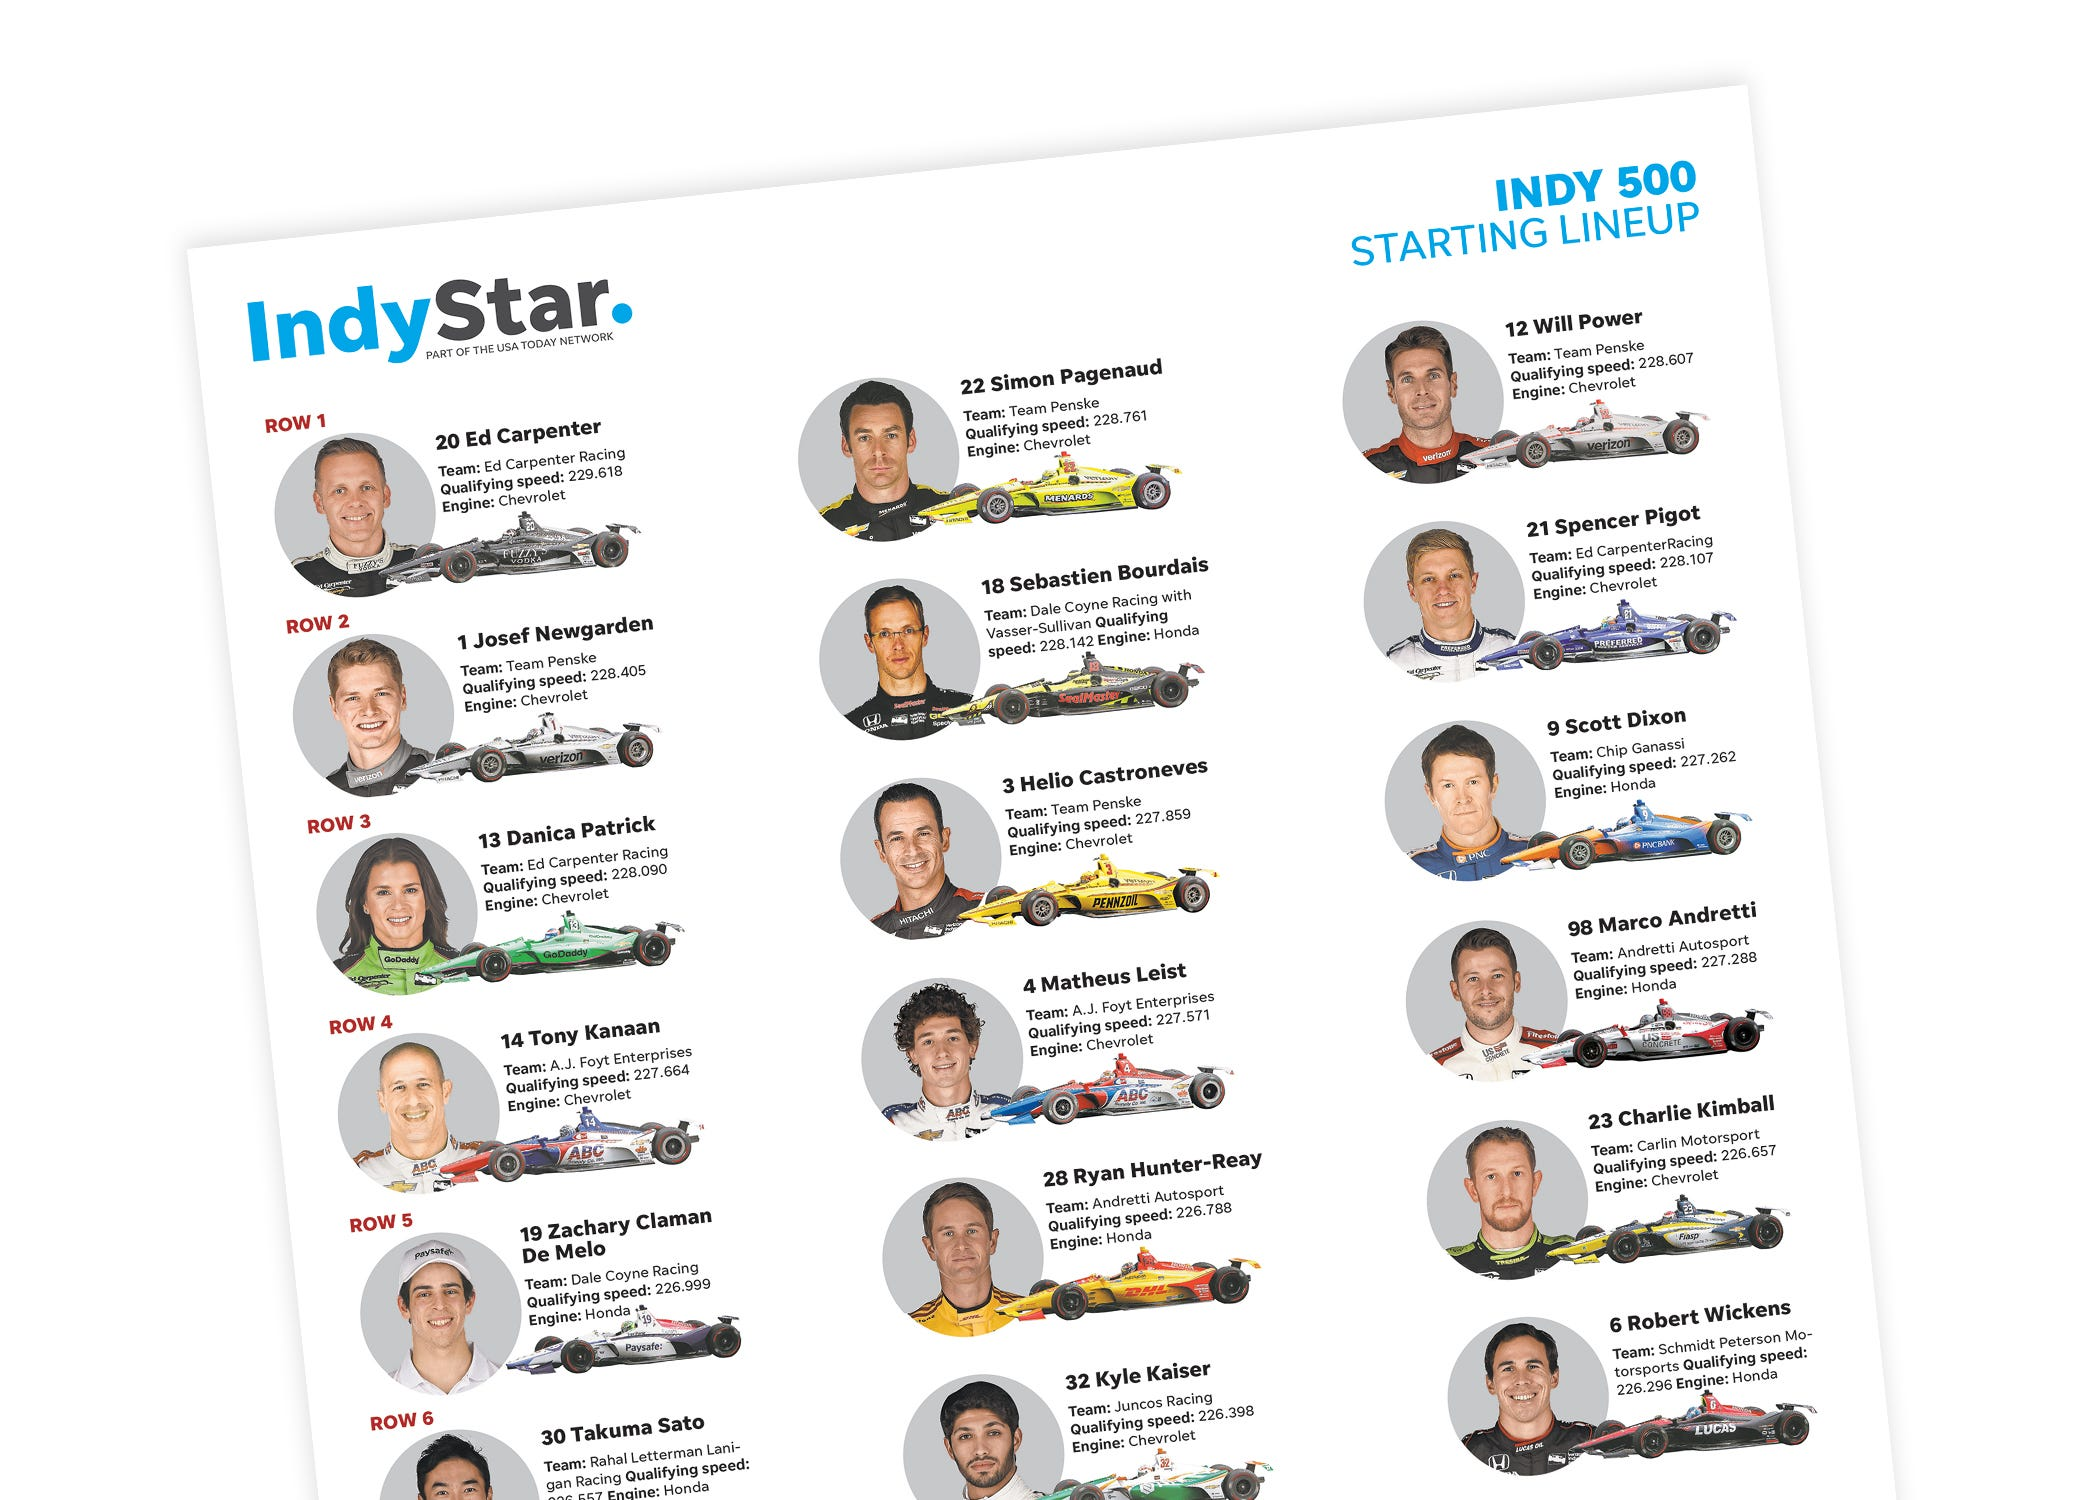 Indy 500 starting lineup photos Indy 5: Full List of Drivers and Qualifying